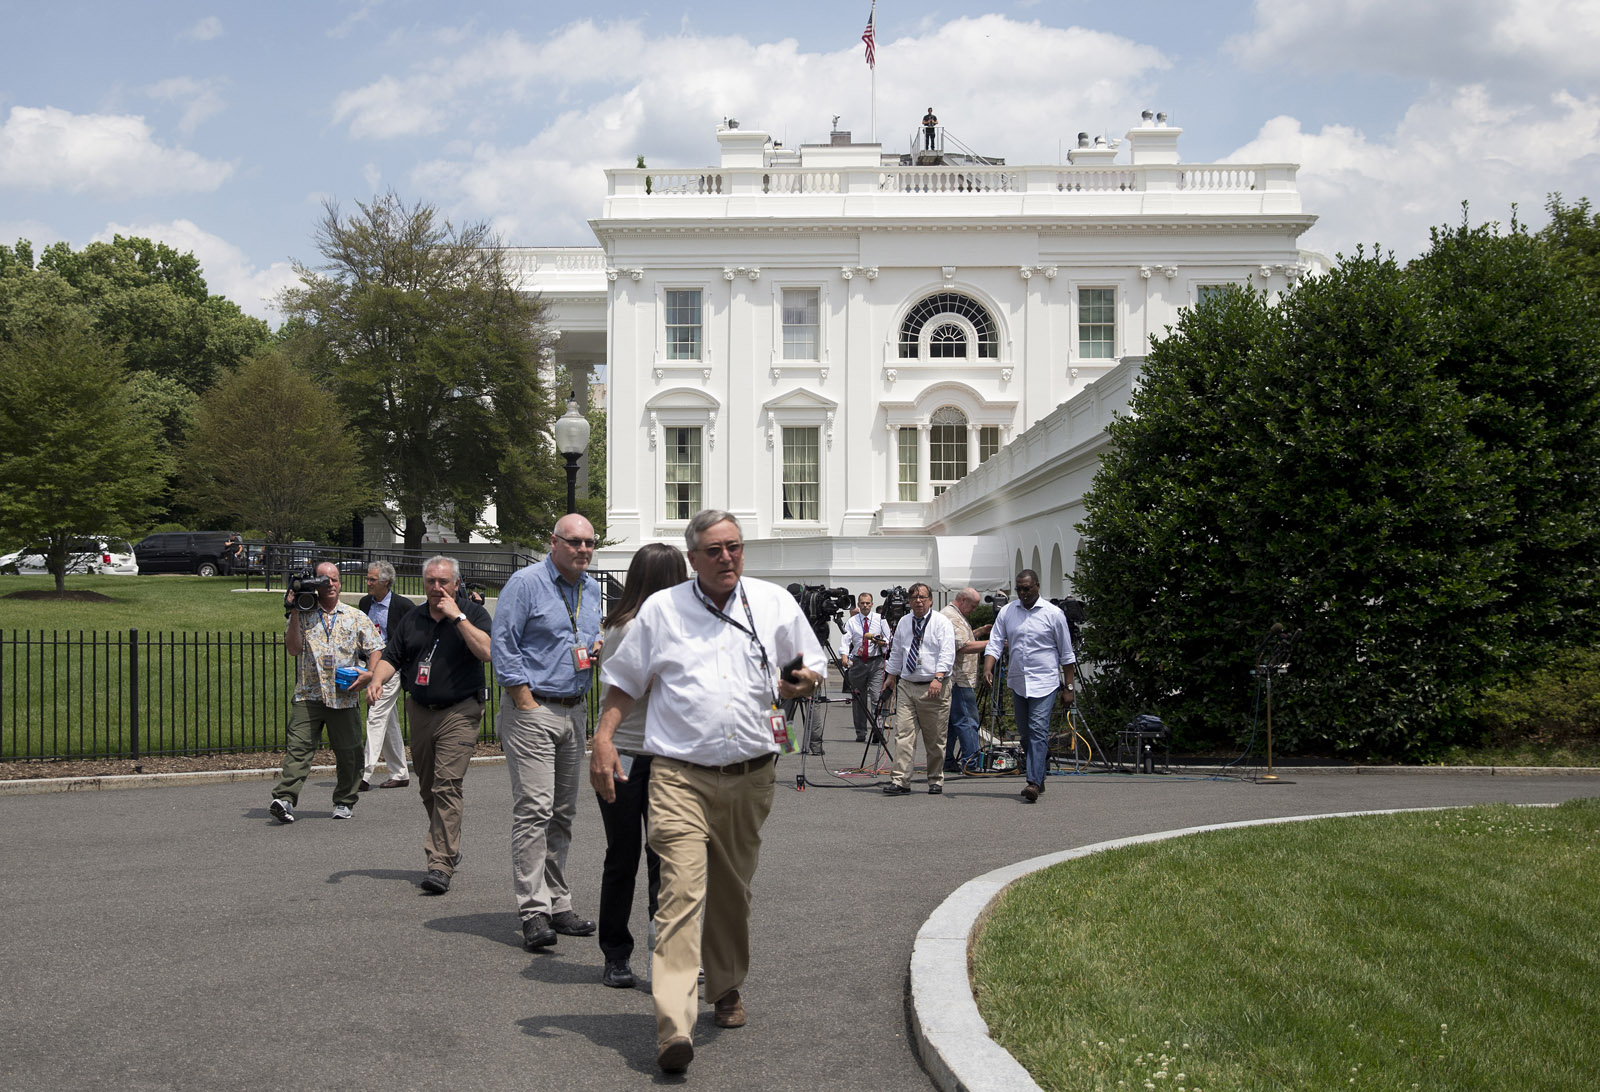 Security scares evacuate parts of White House, Senate office building